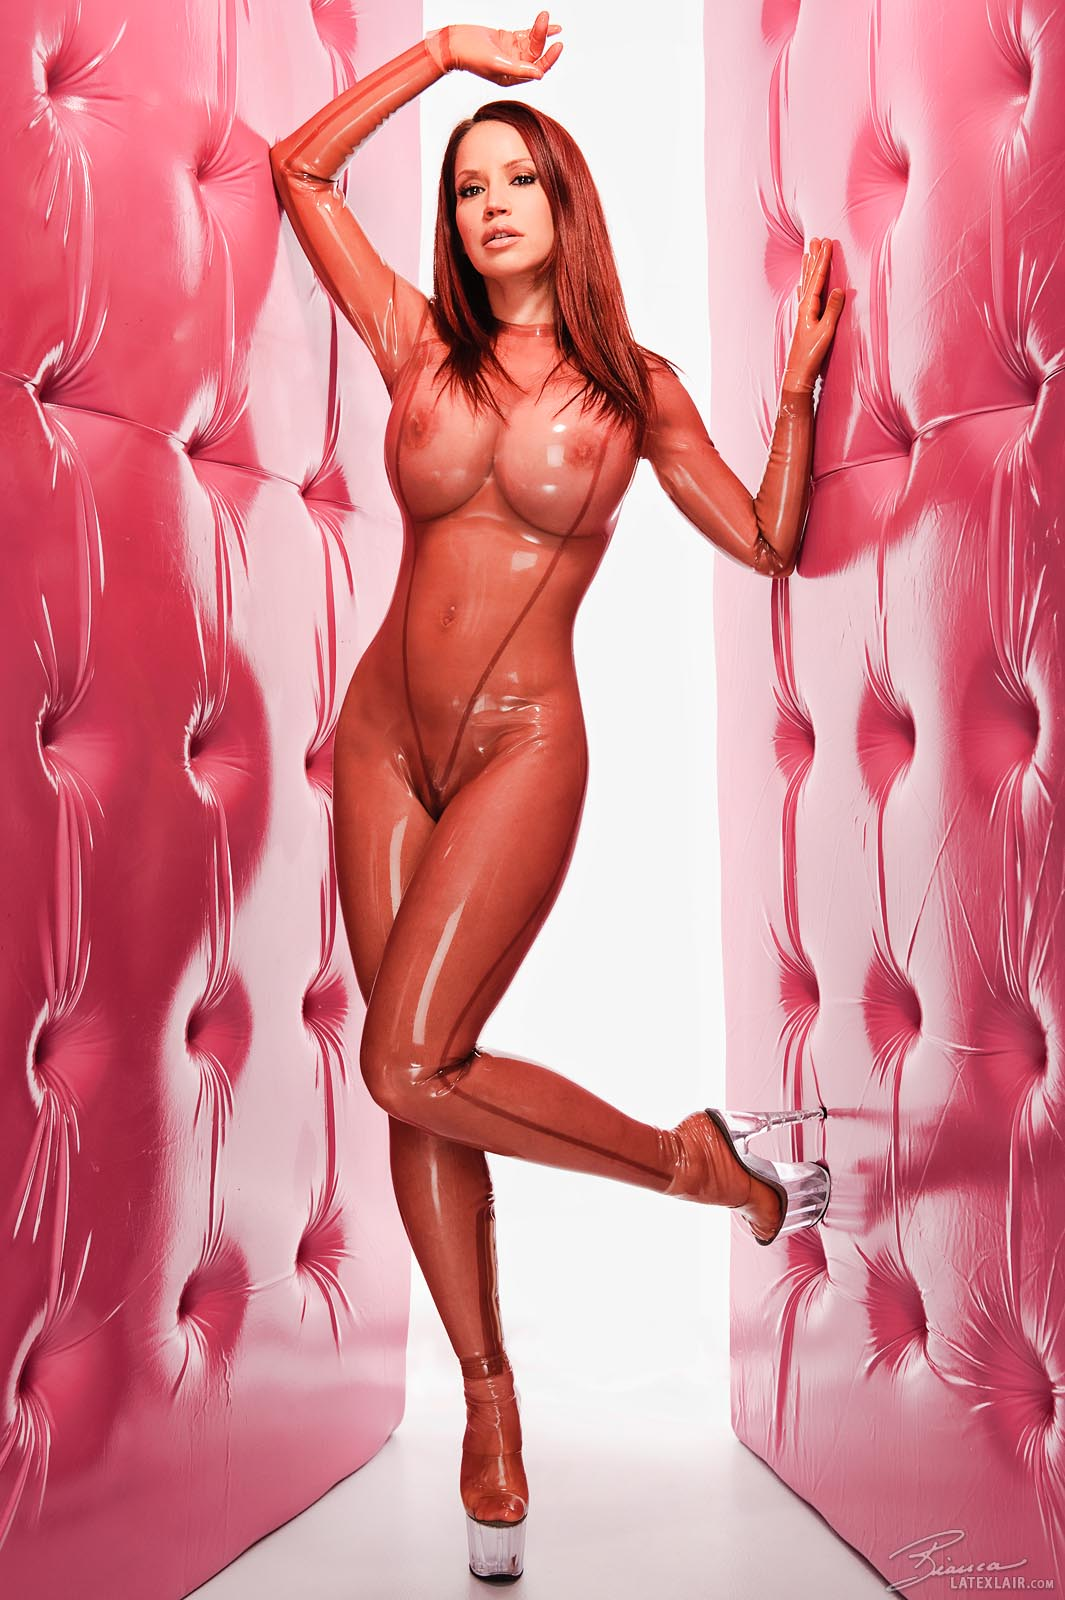 veronika movies and pictures at wet and puffy